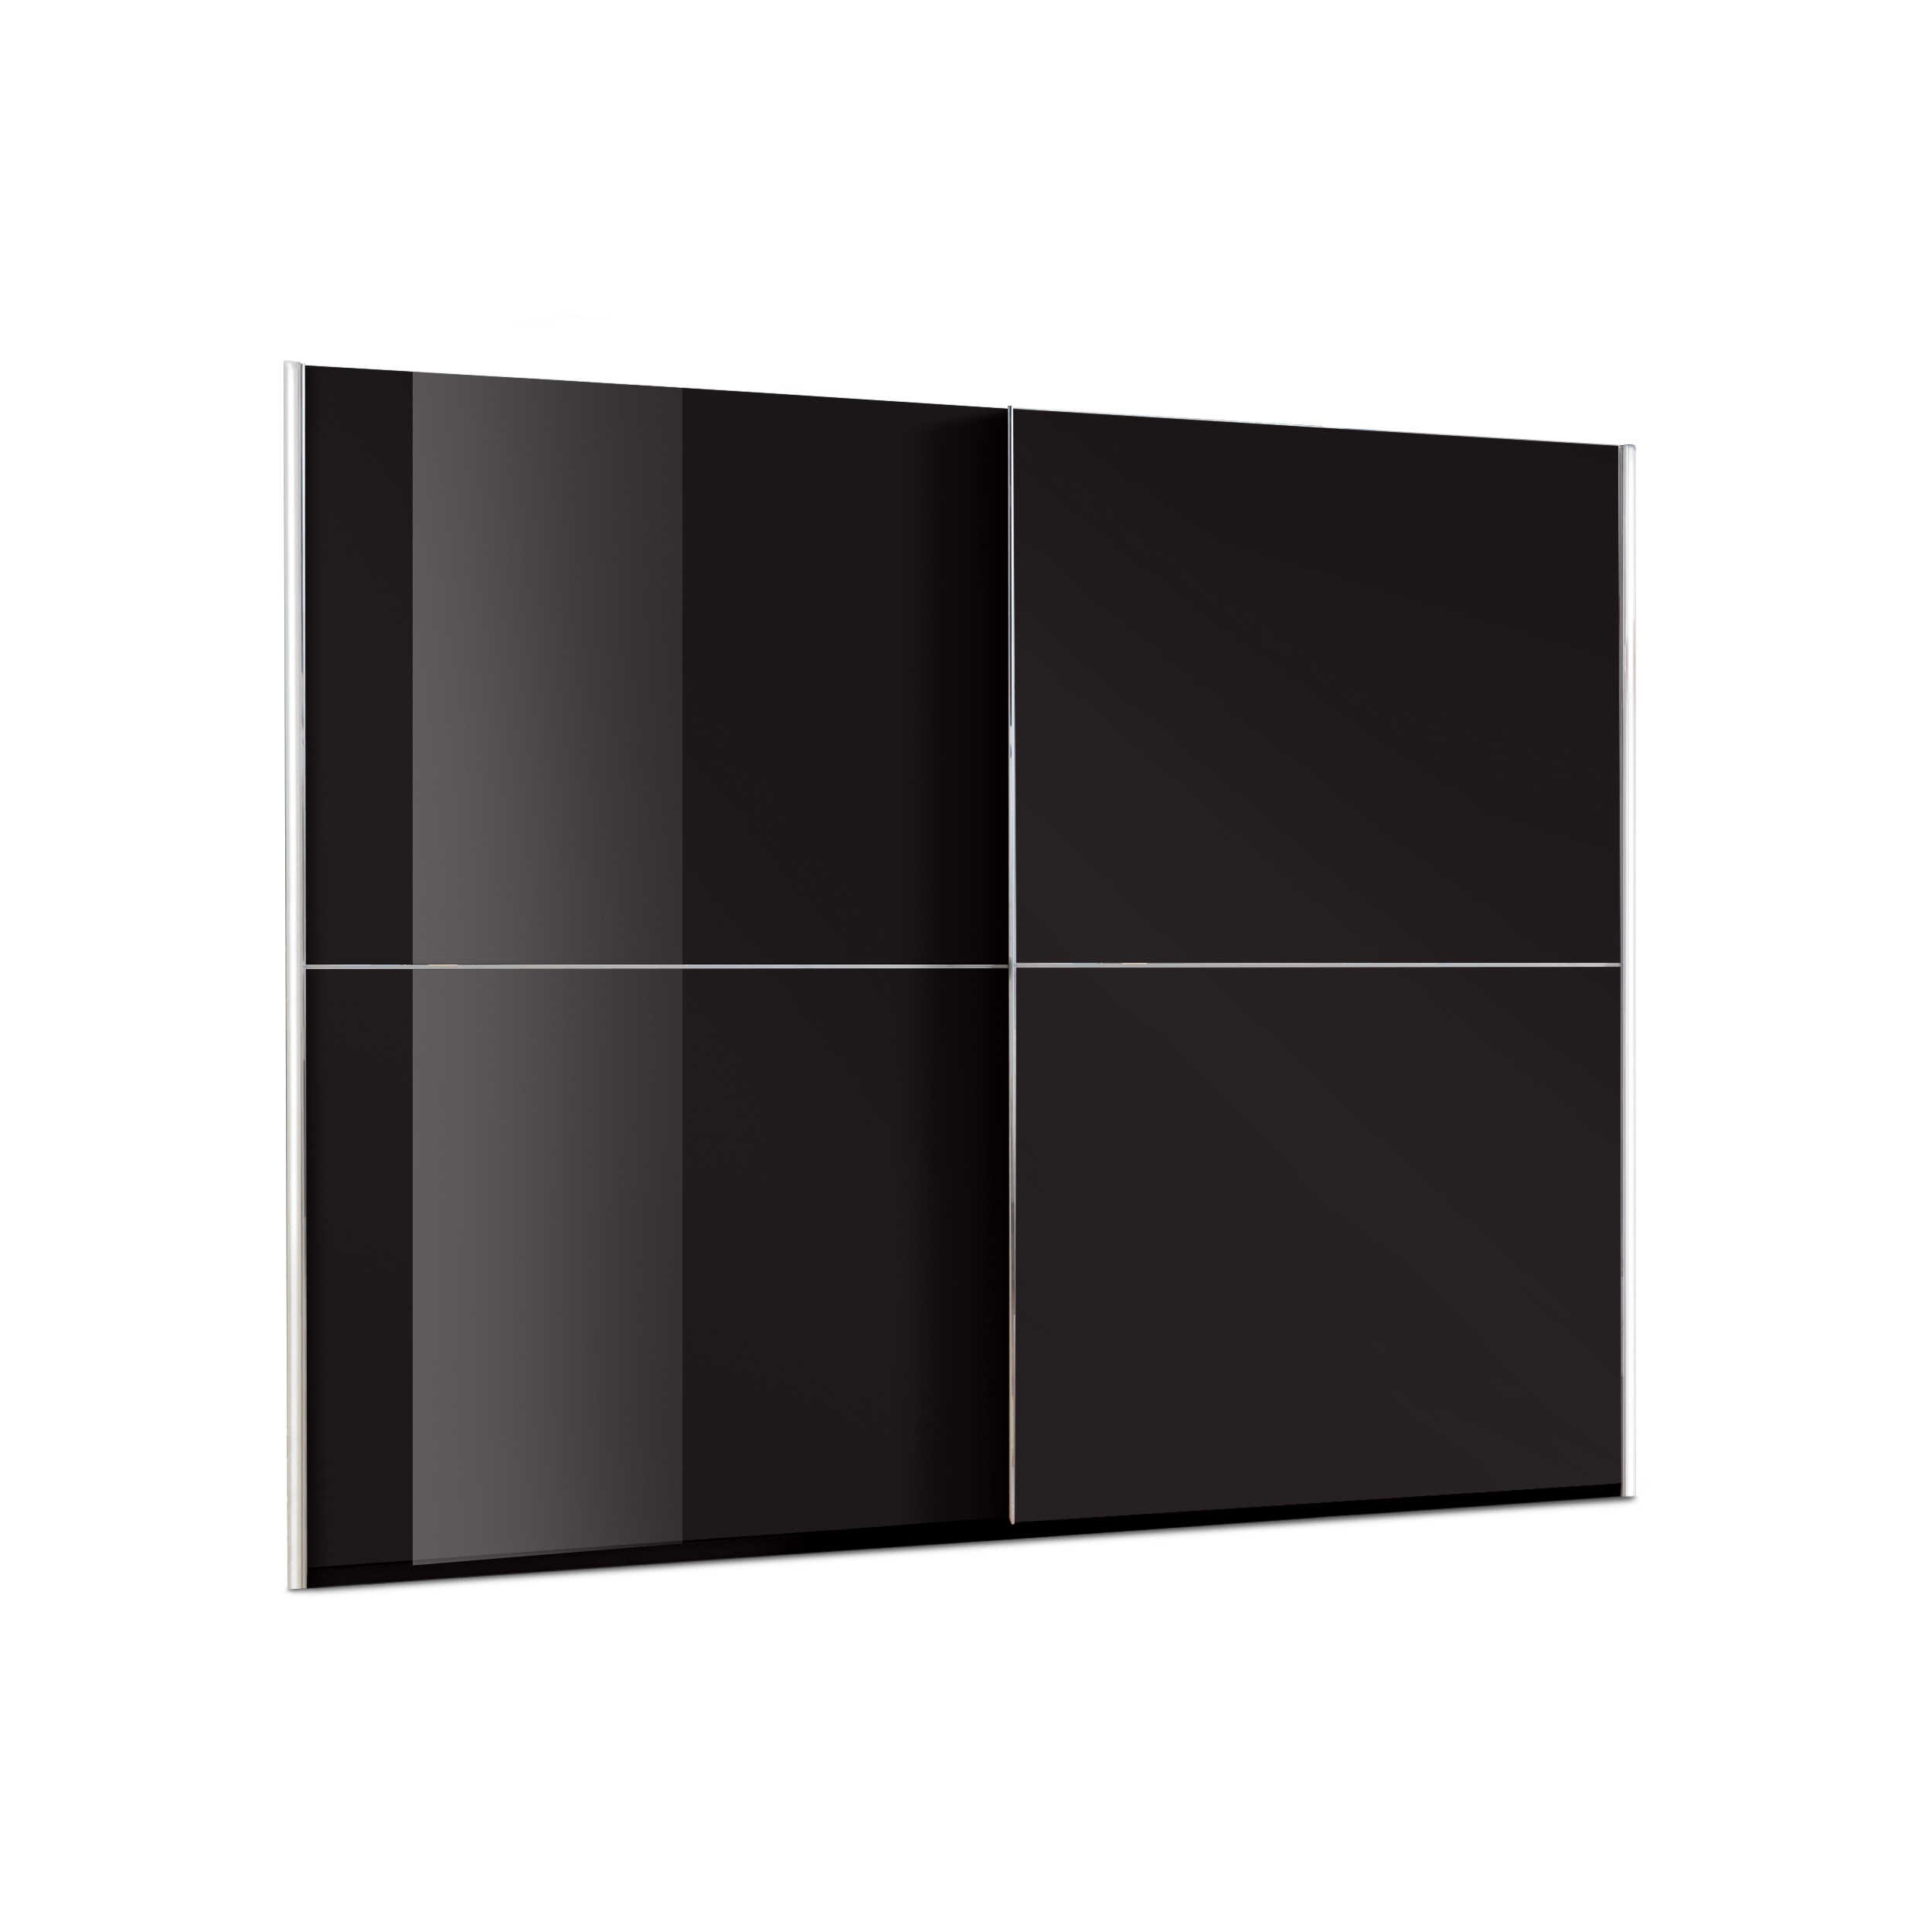 set one by musterring schwebet renschrank pasadena 250 x. Black Bedroom Furniture Sets. Home Design Ideas